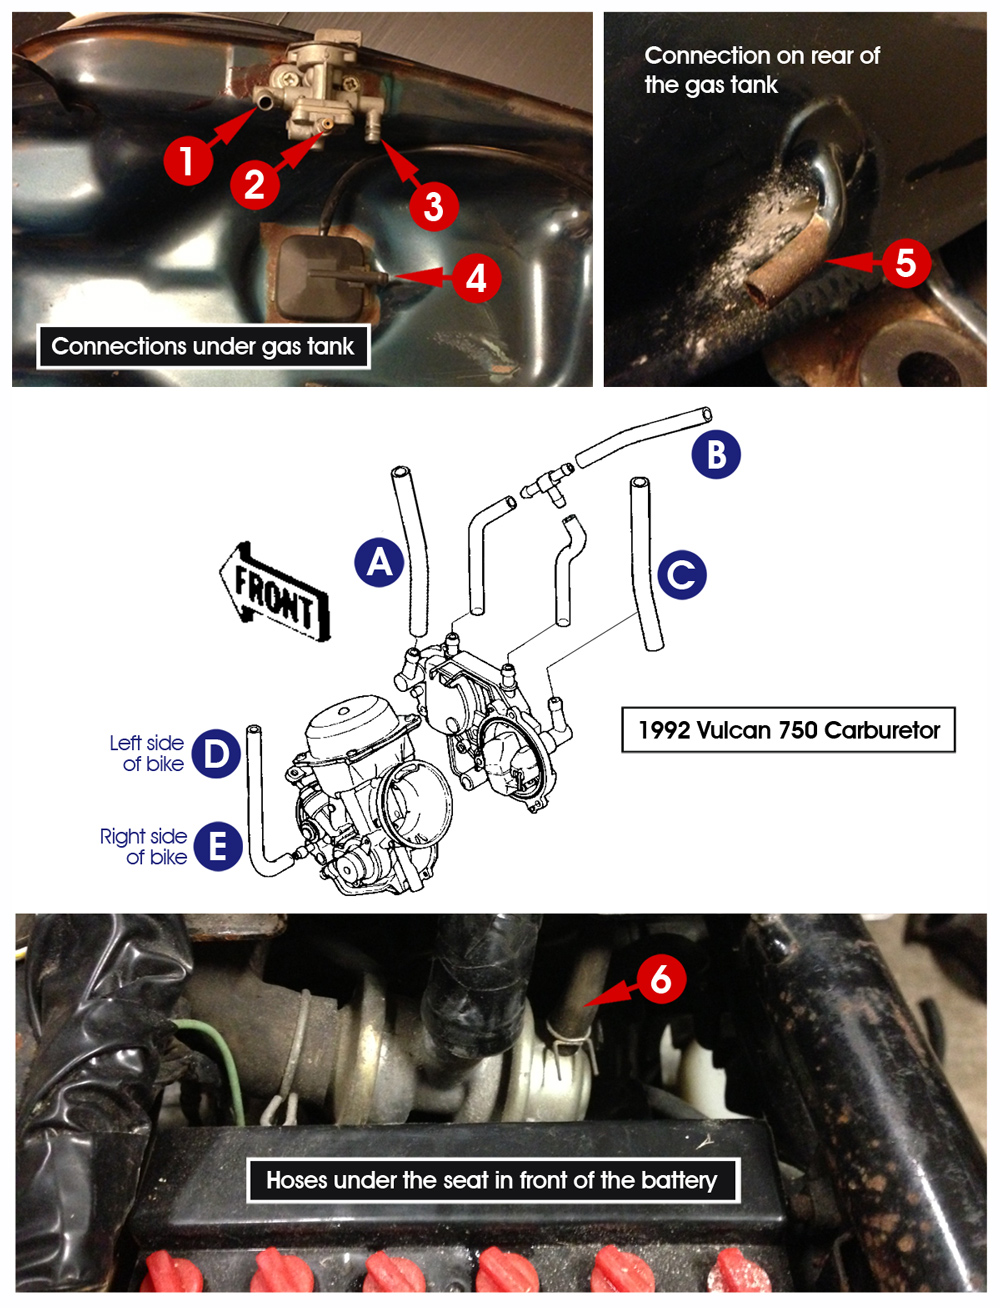 medium resolution of below is a image of the bottom of my fuel tank hose connections in front of the battery and the carburetor please help me connect the dots